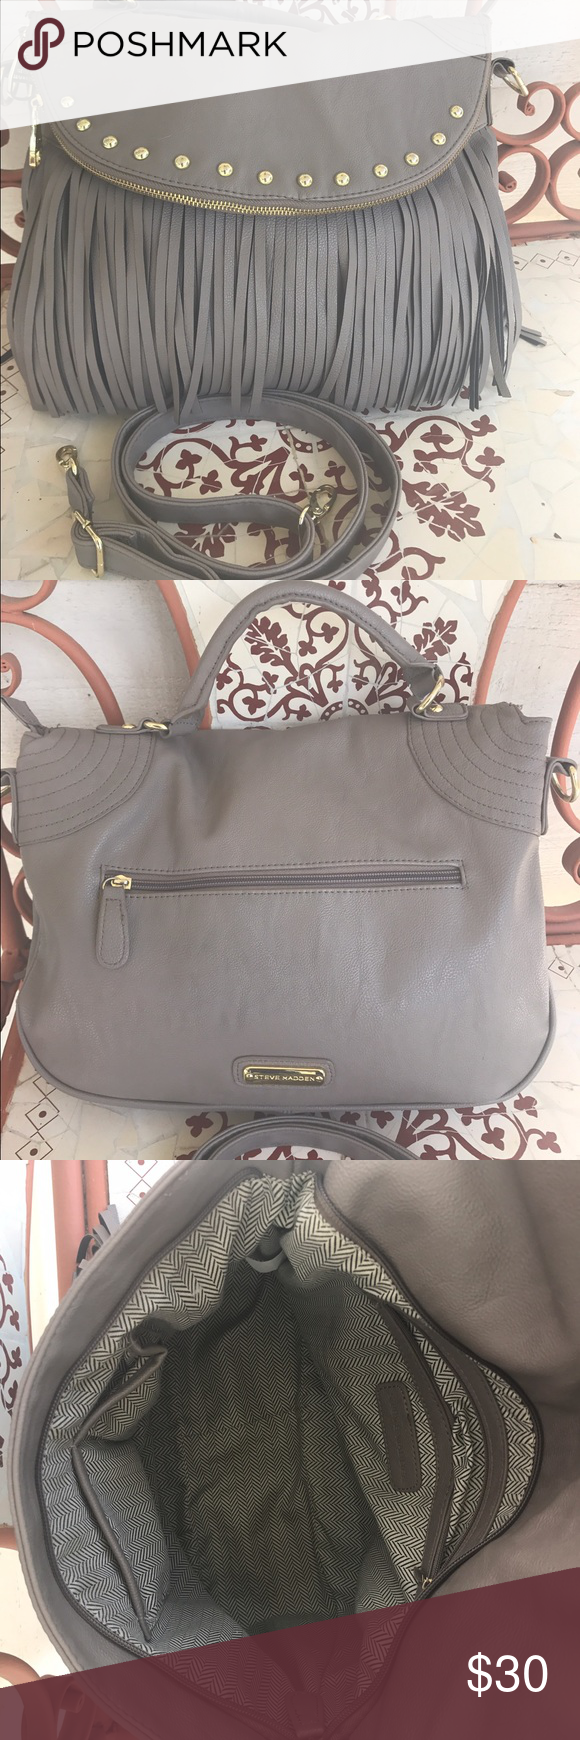 """Steve Madden Purse Steve Madden Purse, removable crossbody strap(adjustable). Length is 16"""", width 4"""", & depth is 10"""". Taupe color with black/taupe fringe! Steve Madden Bags Crossbody Bags"""